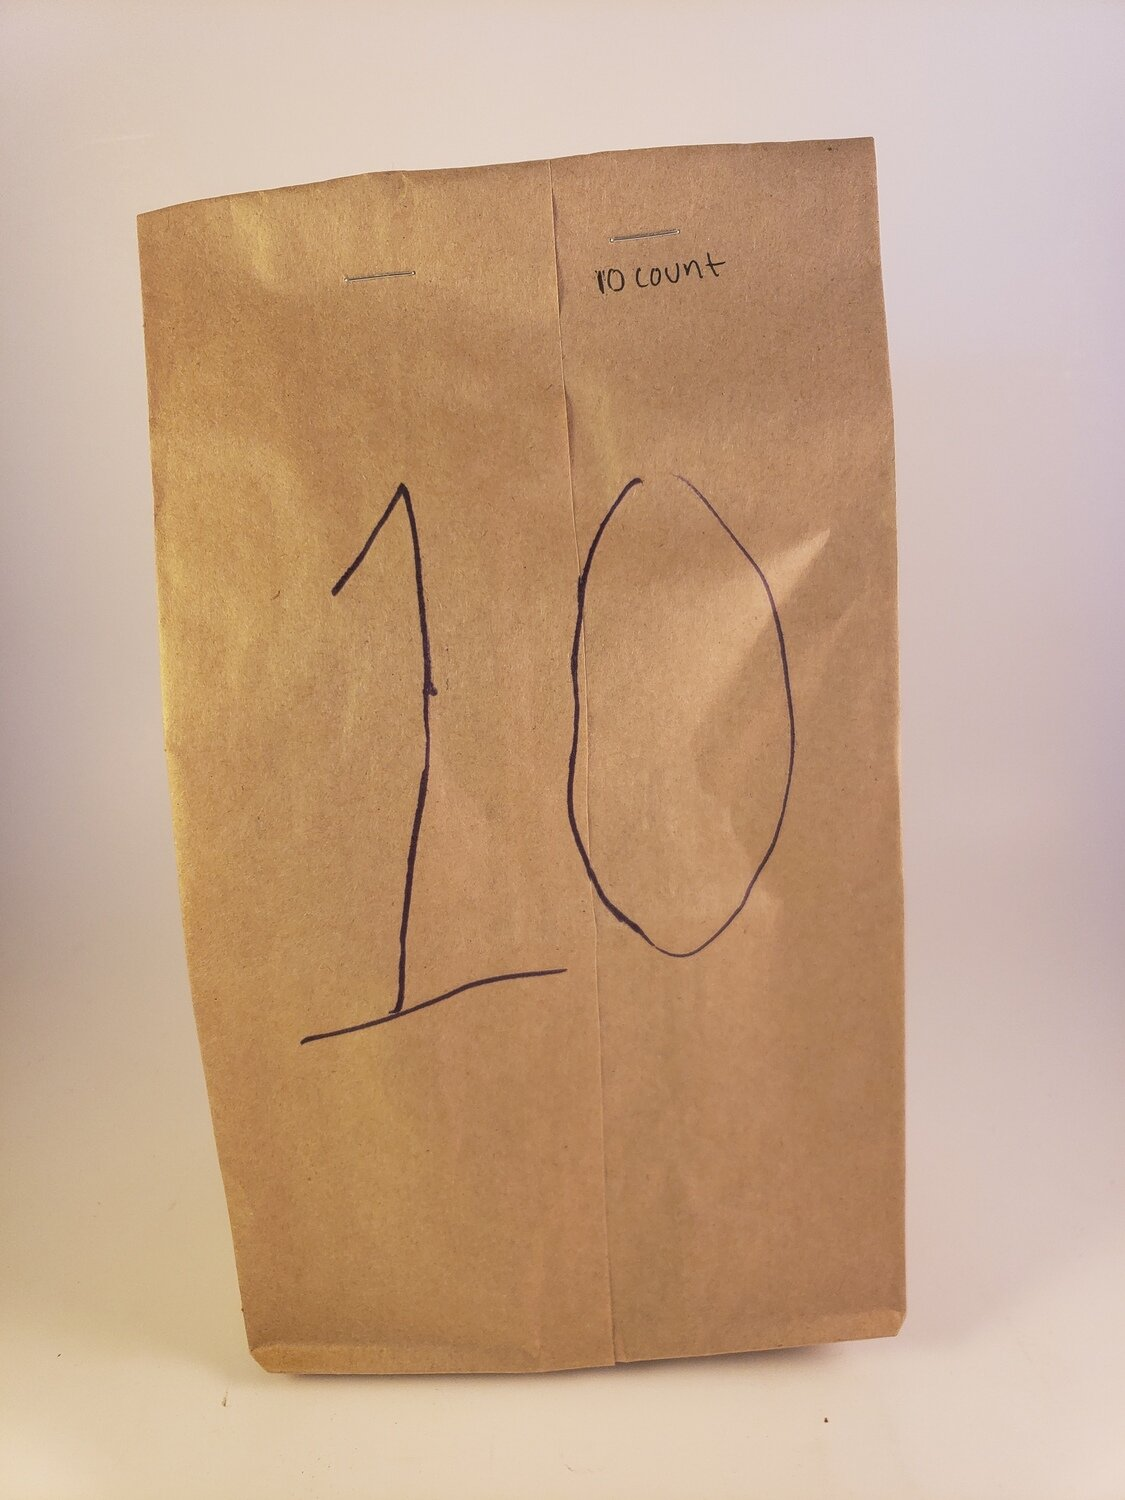 Take My Lunch Money Brown Bag Sampler 10 Count